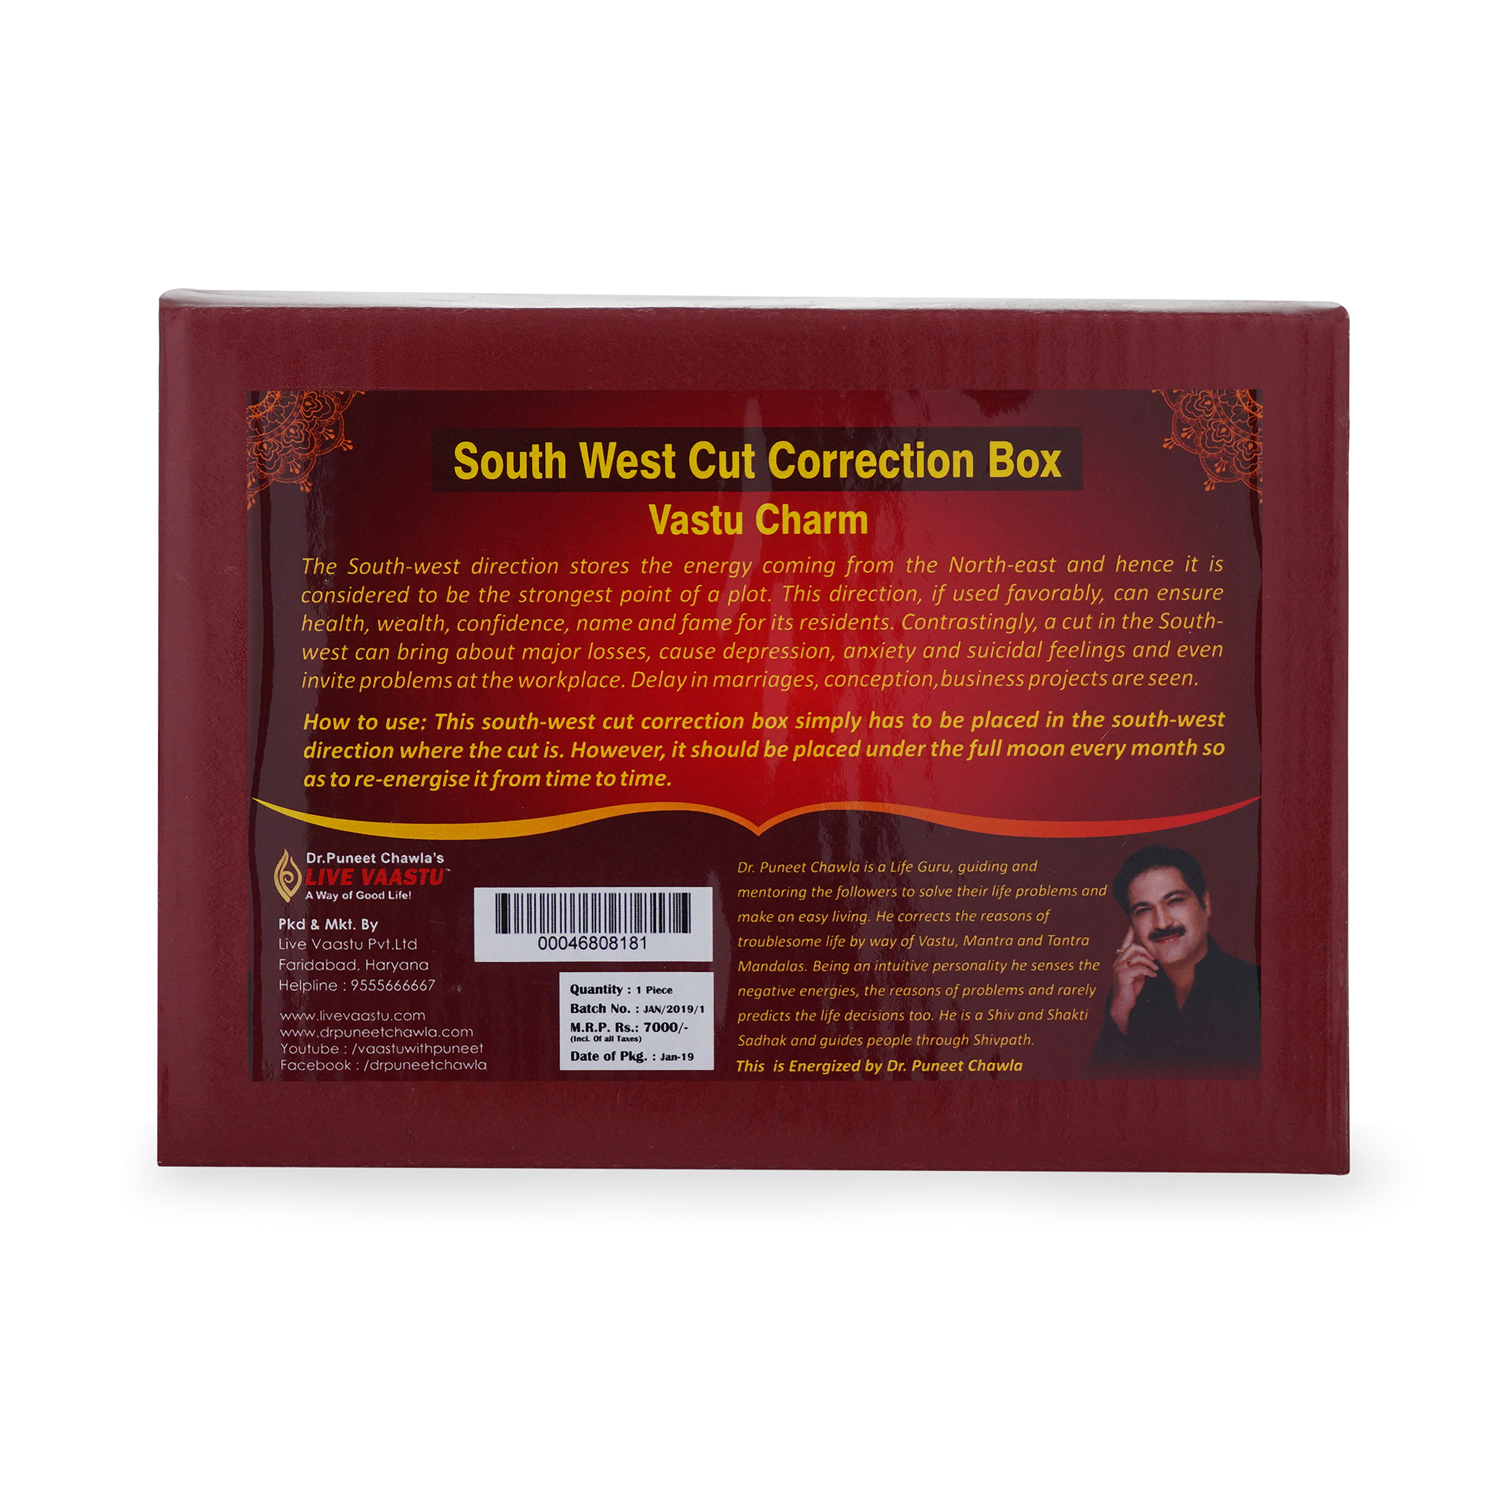 South west cut correction box